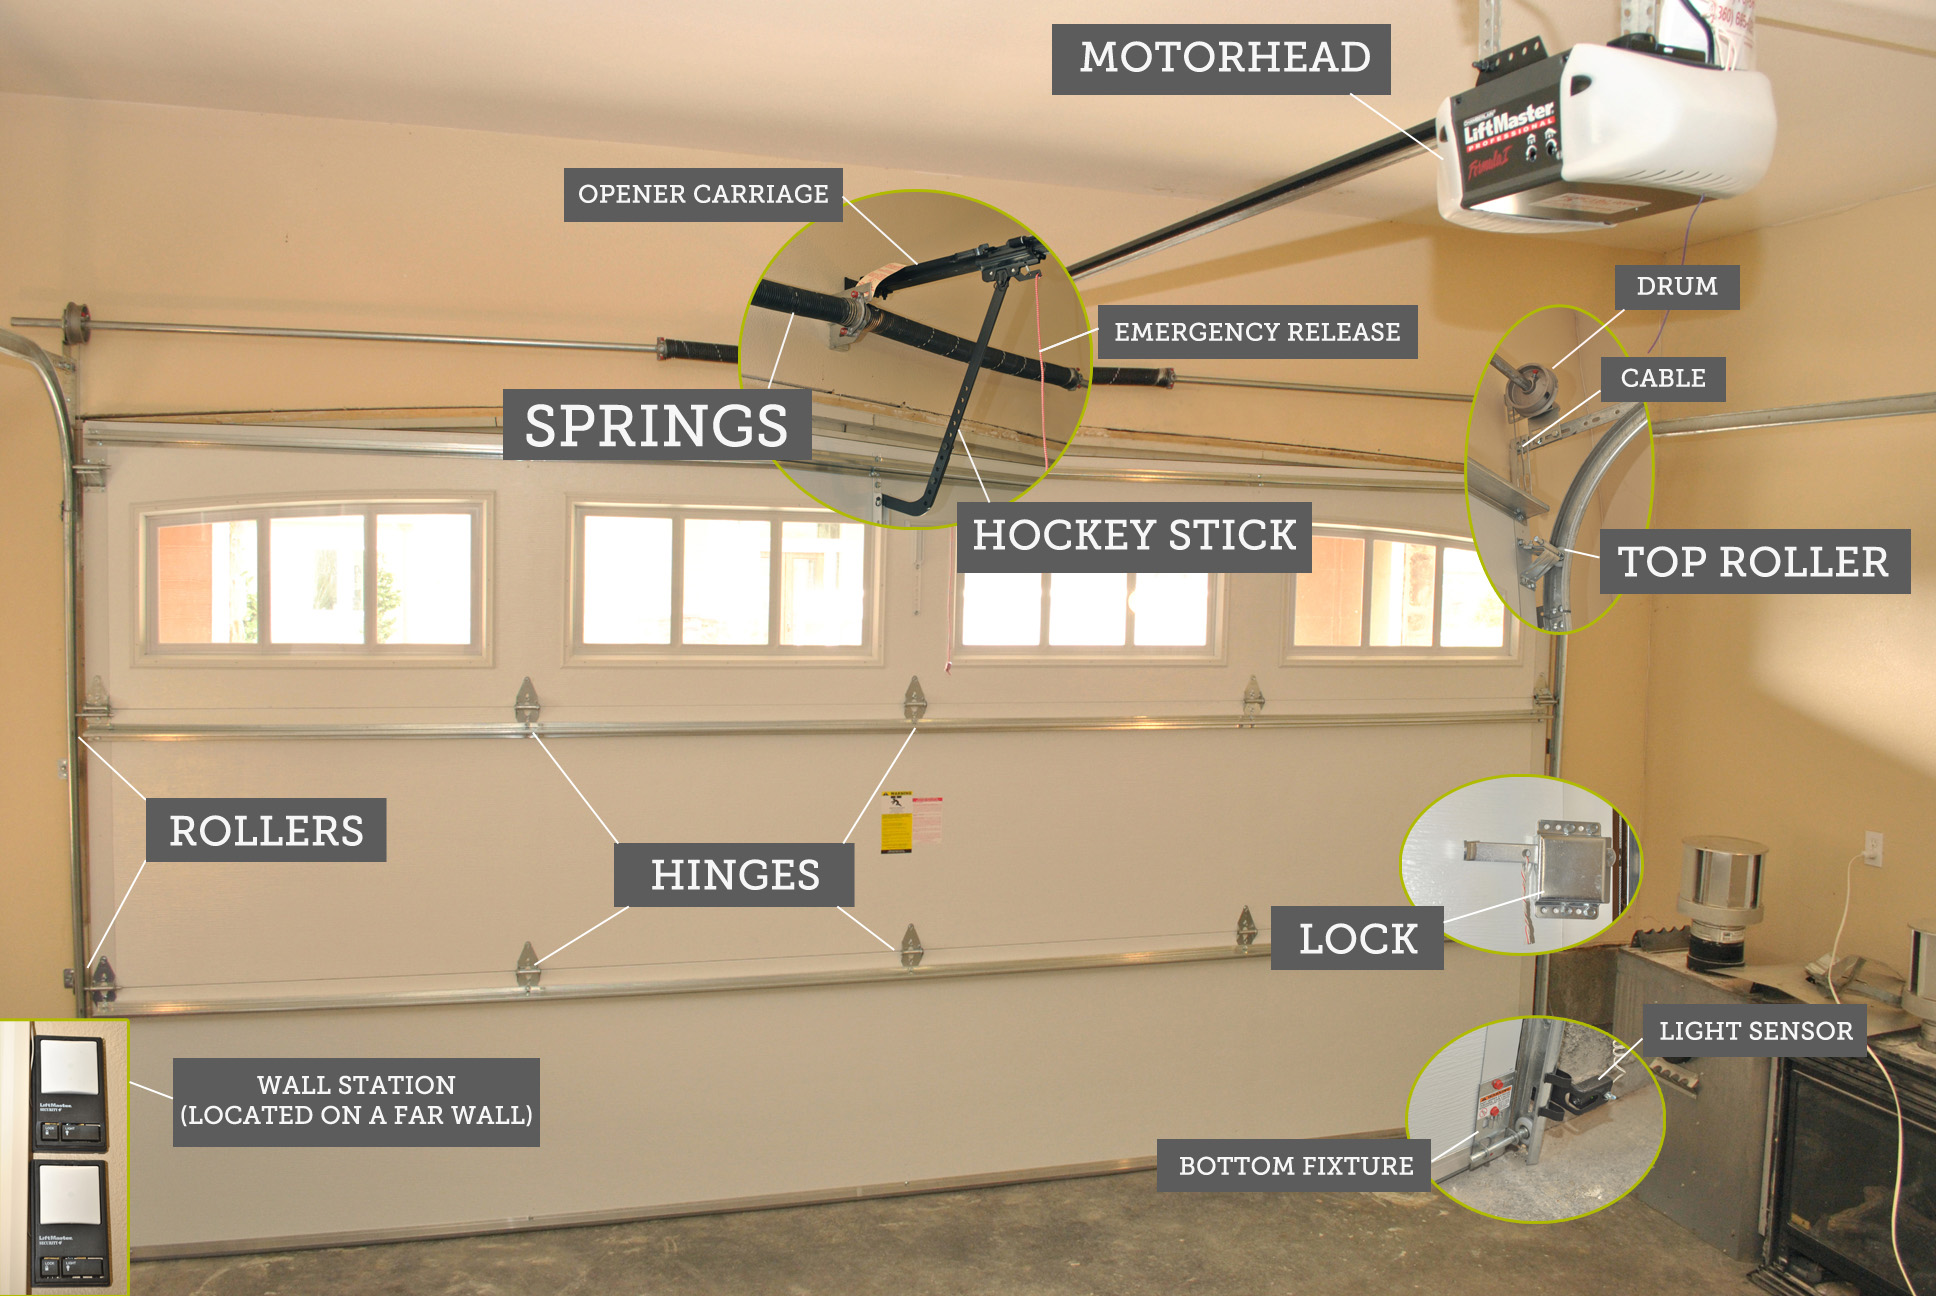 insulated about door a garage doors are design your home spectacular remodel how own with is much